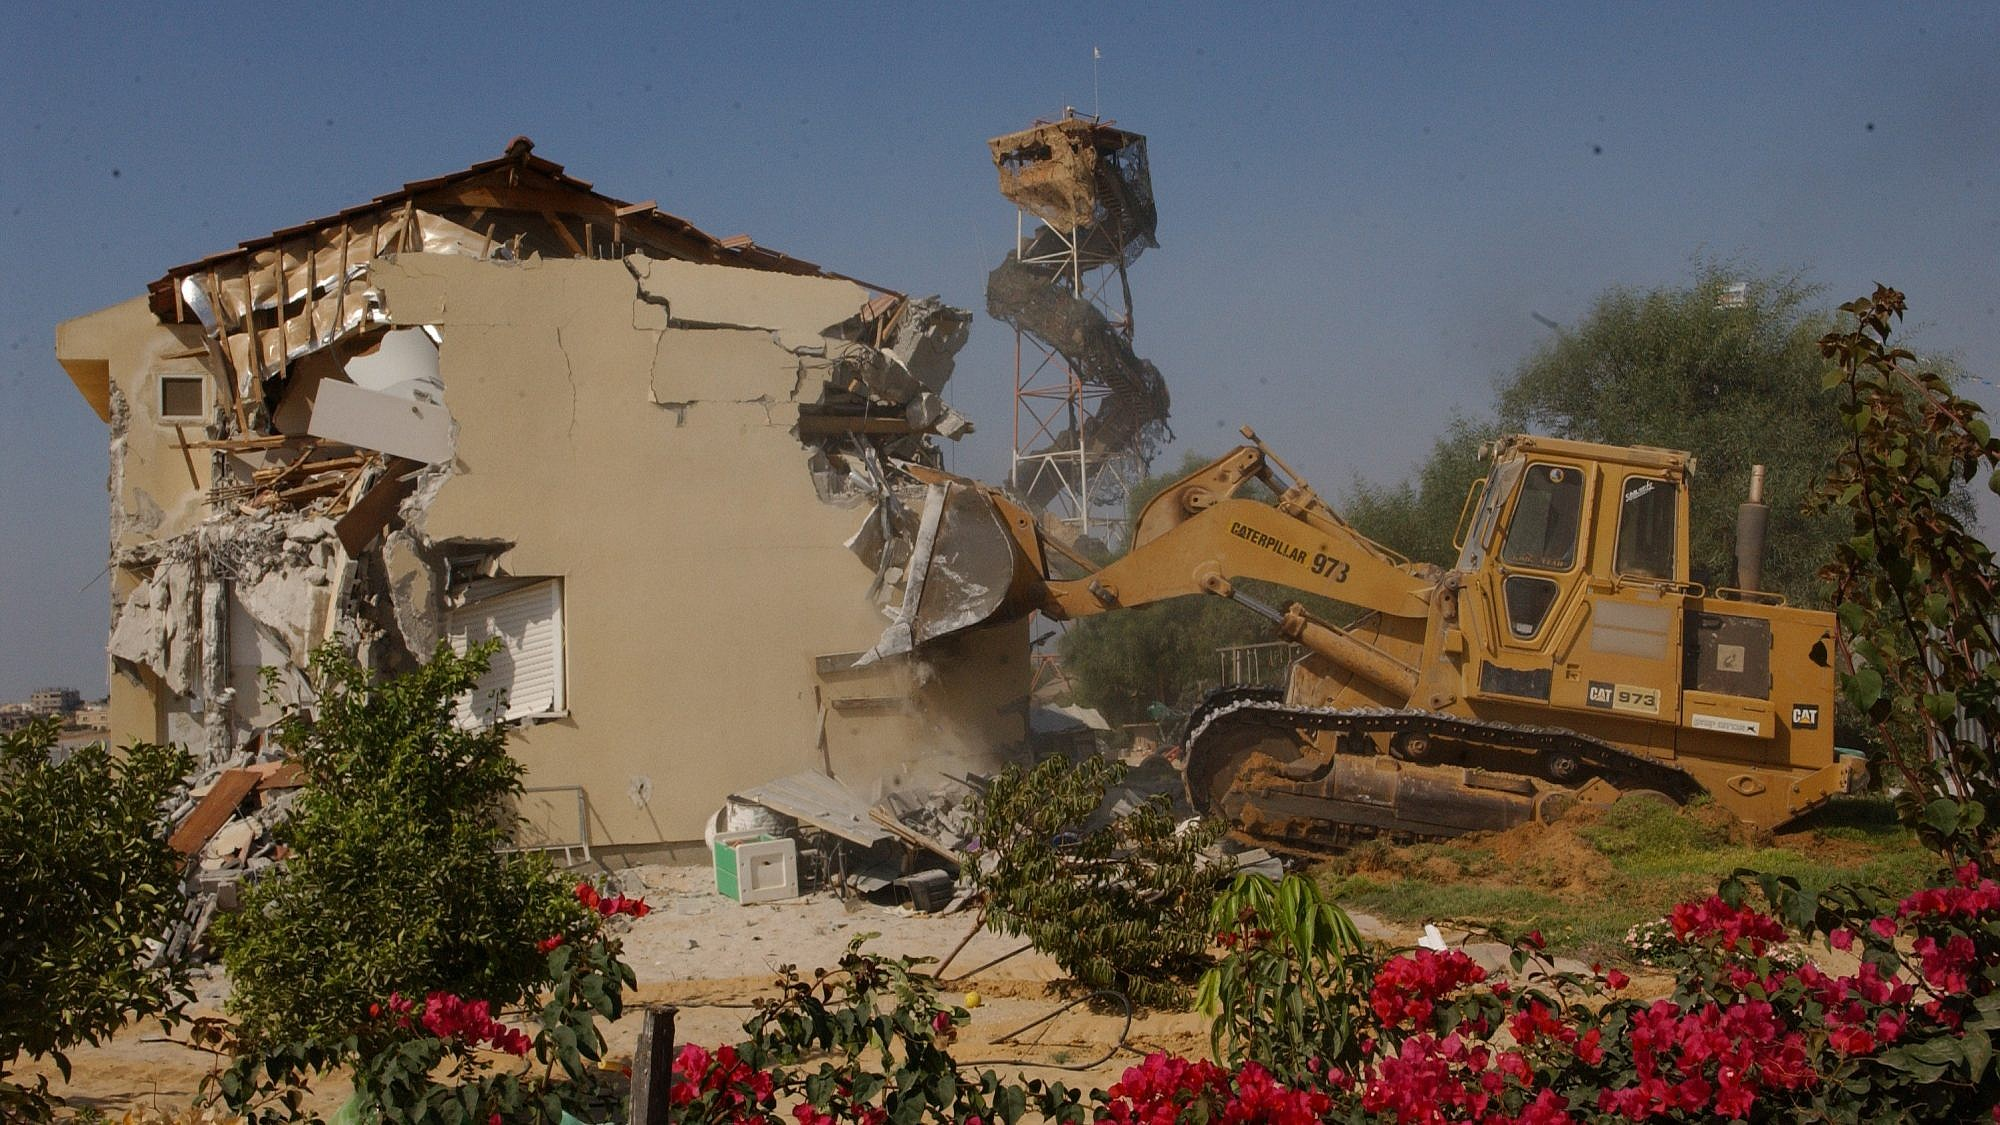 Demolition of Ganey Tal settlement in Gush Katif, Gaza, during Israel's disengagement. August 22, 2005. Photo by Yossi Zamir/Flash90.